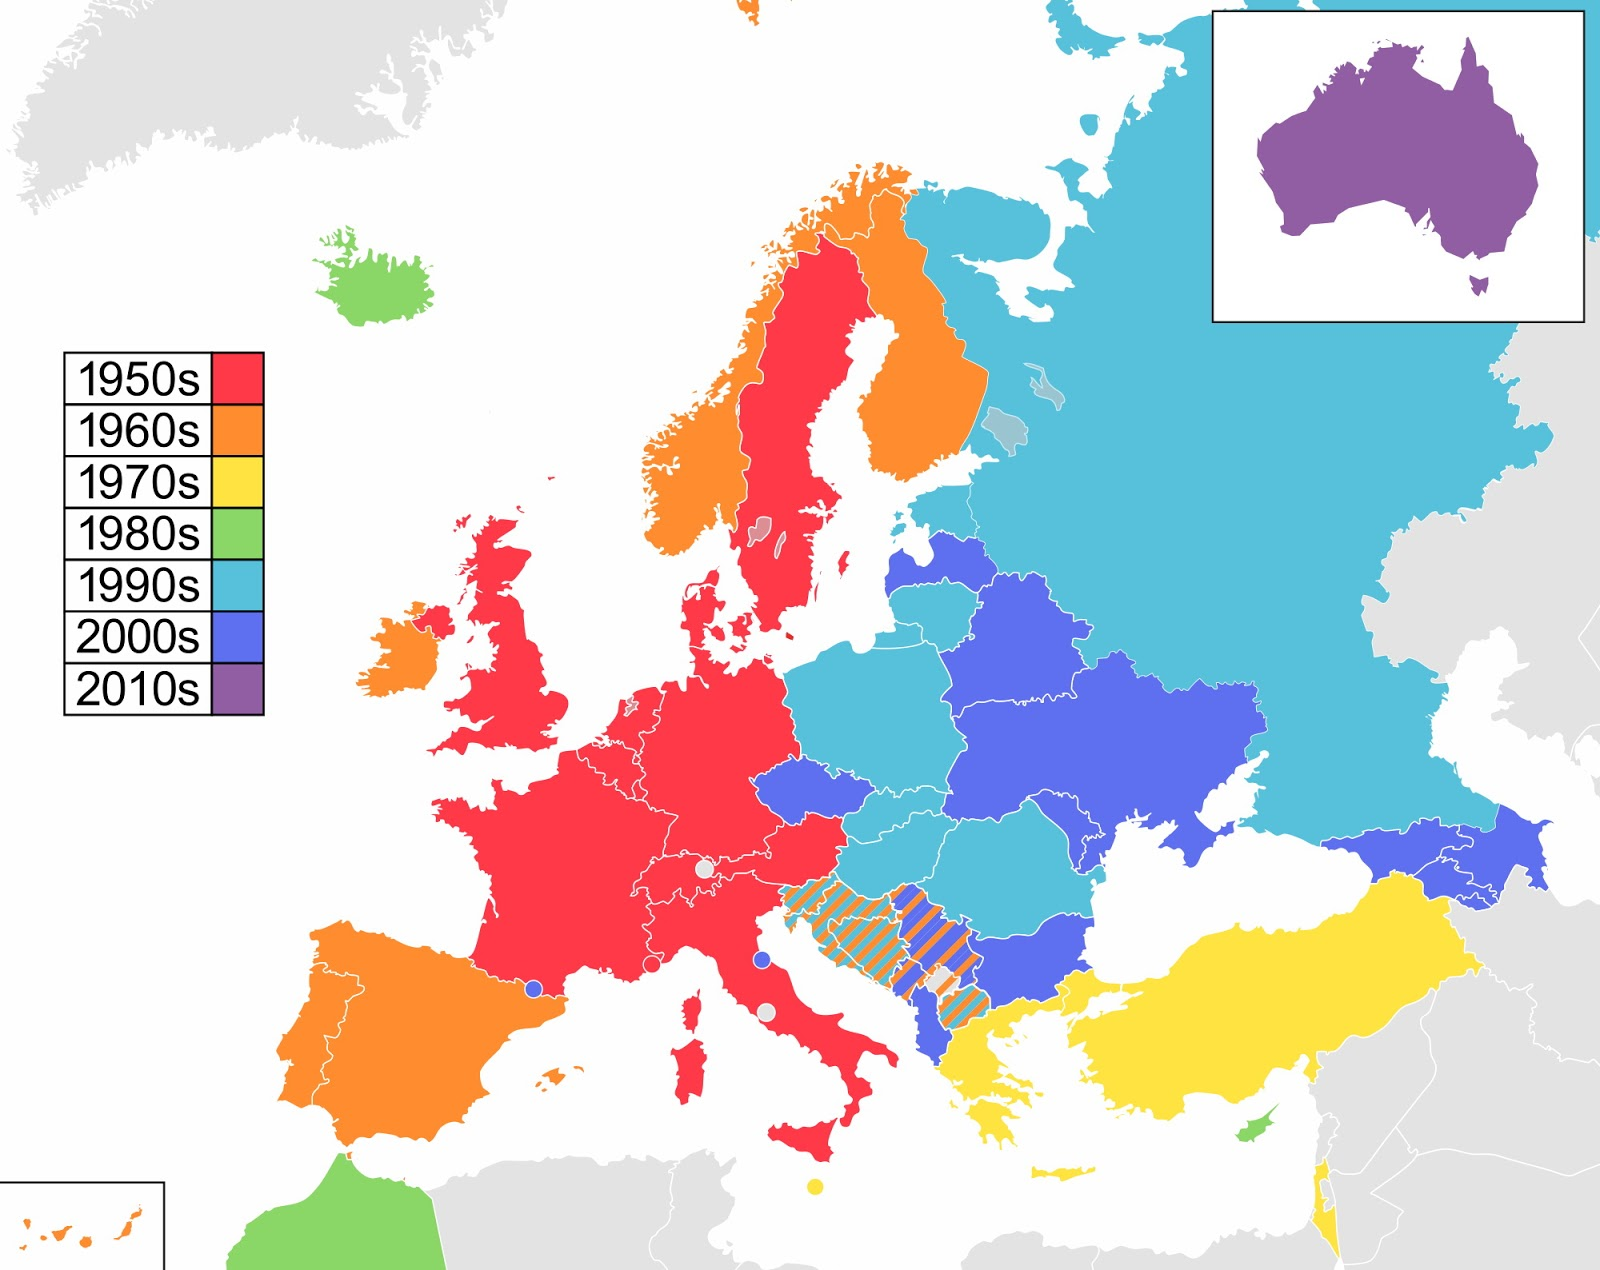 Participants in the Eurovision Song Contest, coloured by decade of debut